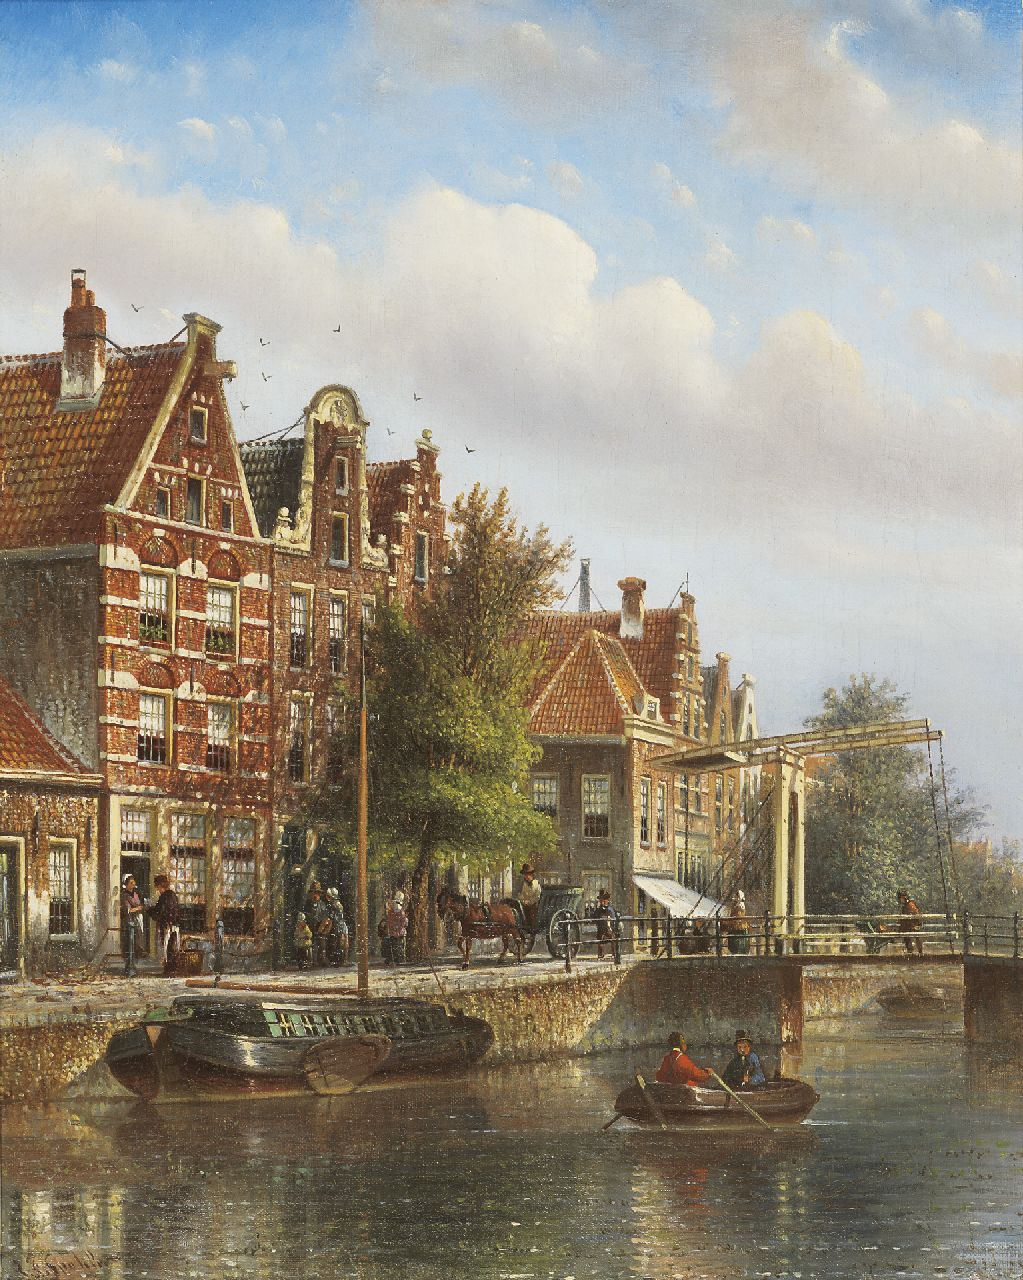 Spohler J.F.  | Johannes Franciscus Spohler, A town scene in summer, oil on canvas 44.0 x 35.0 cm, signed l.l.